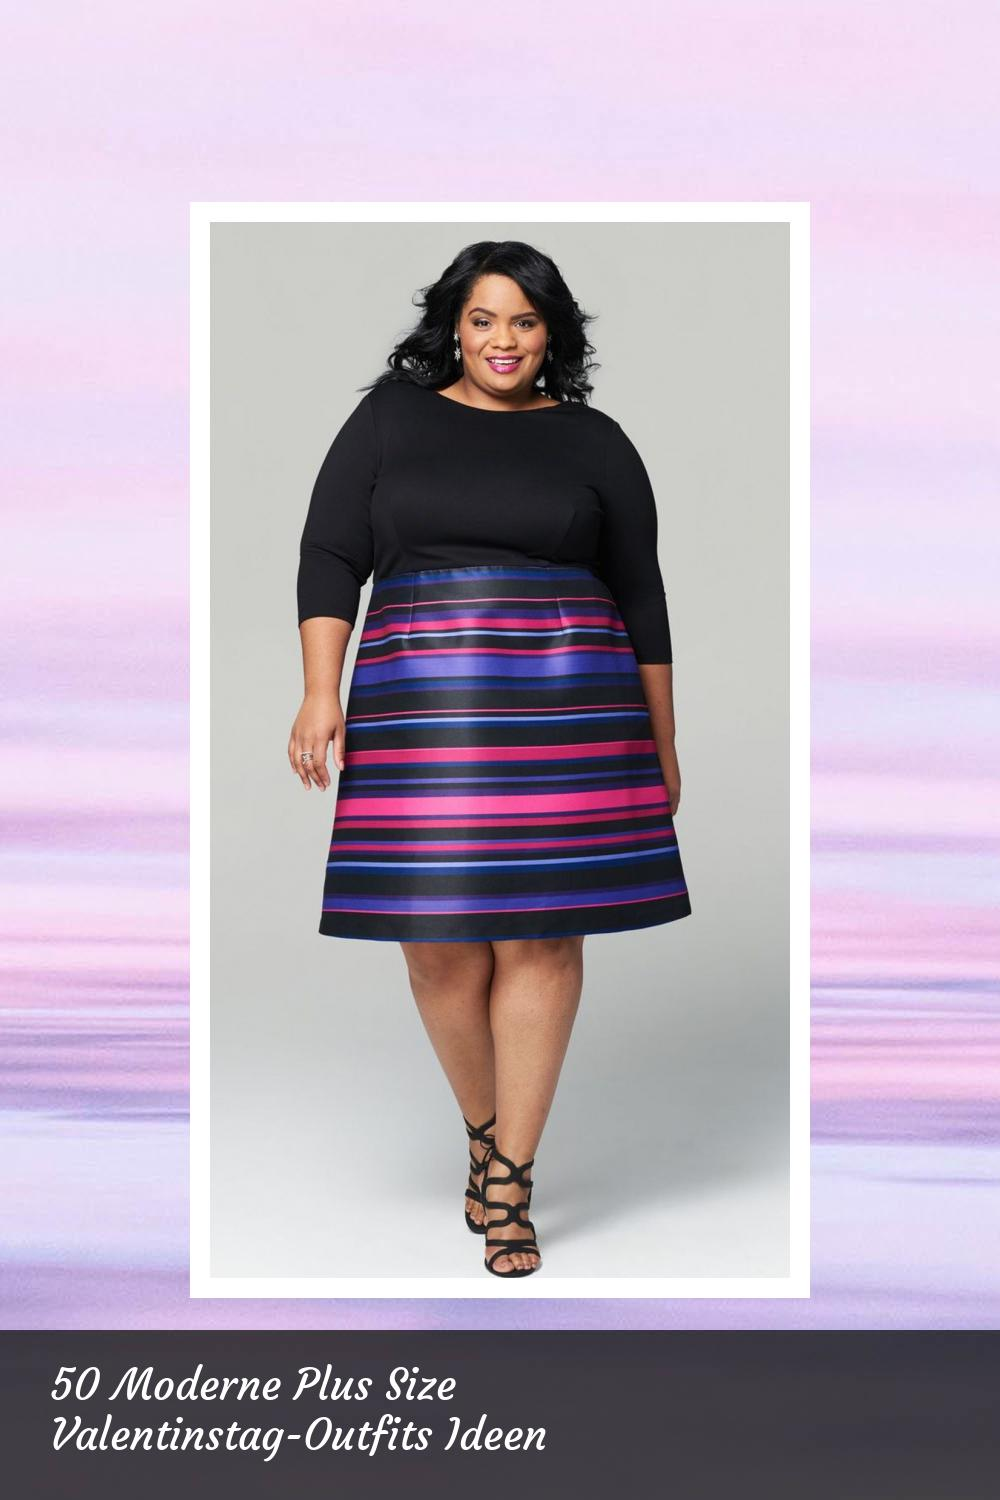 50 Moderne Plus Size Valentinstag-Outfits Ideen 21